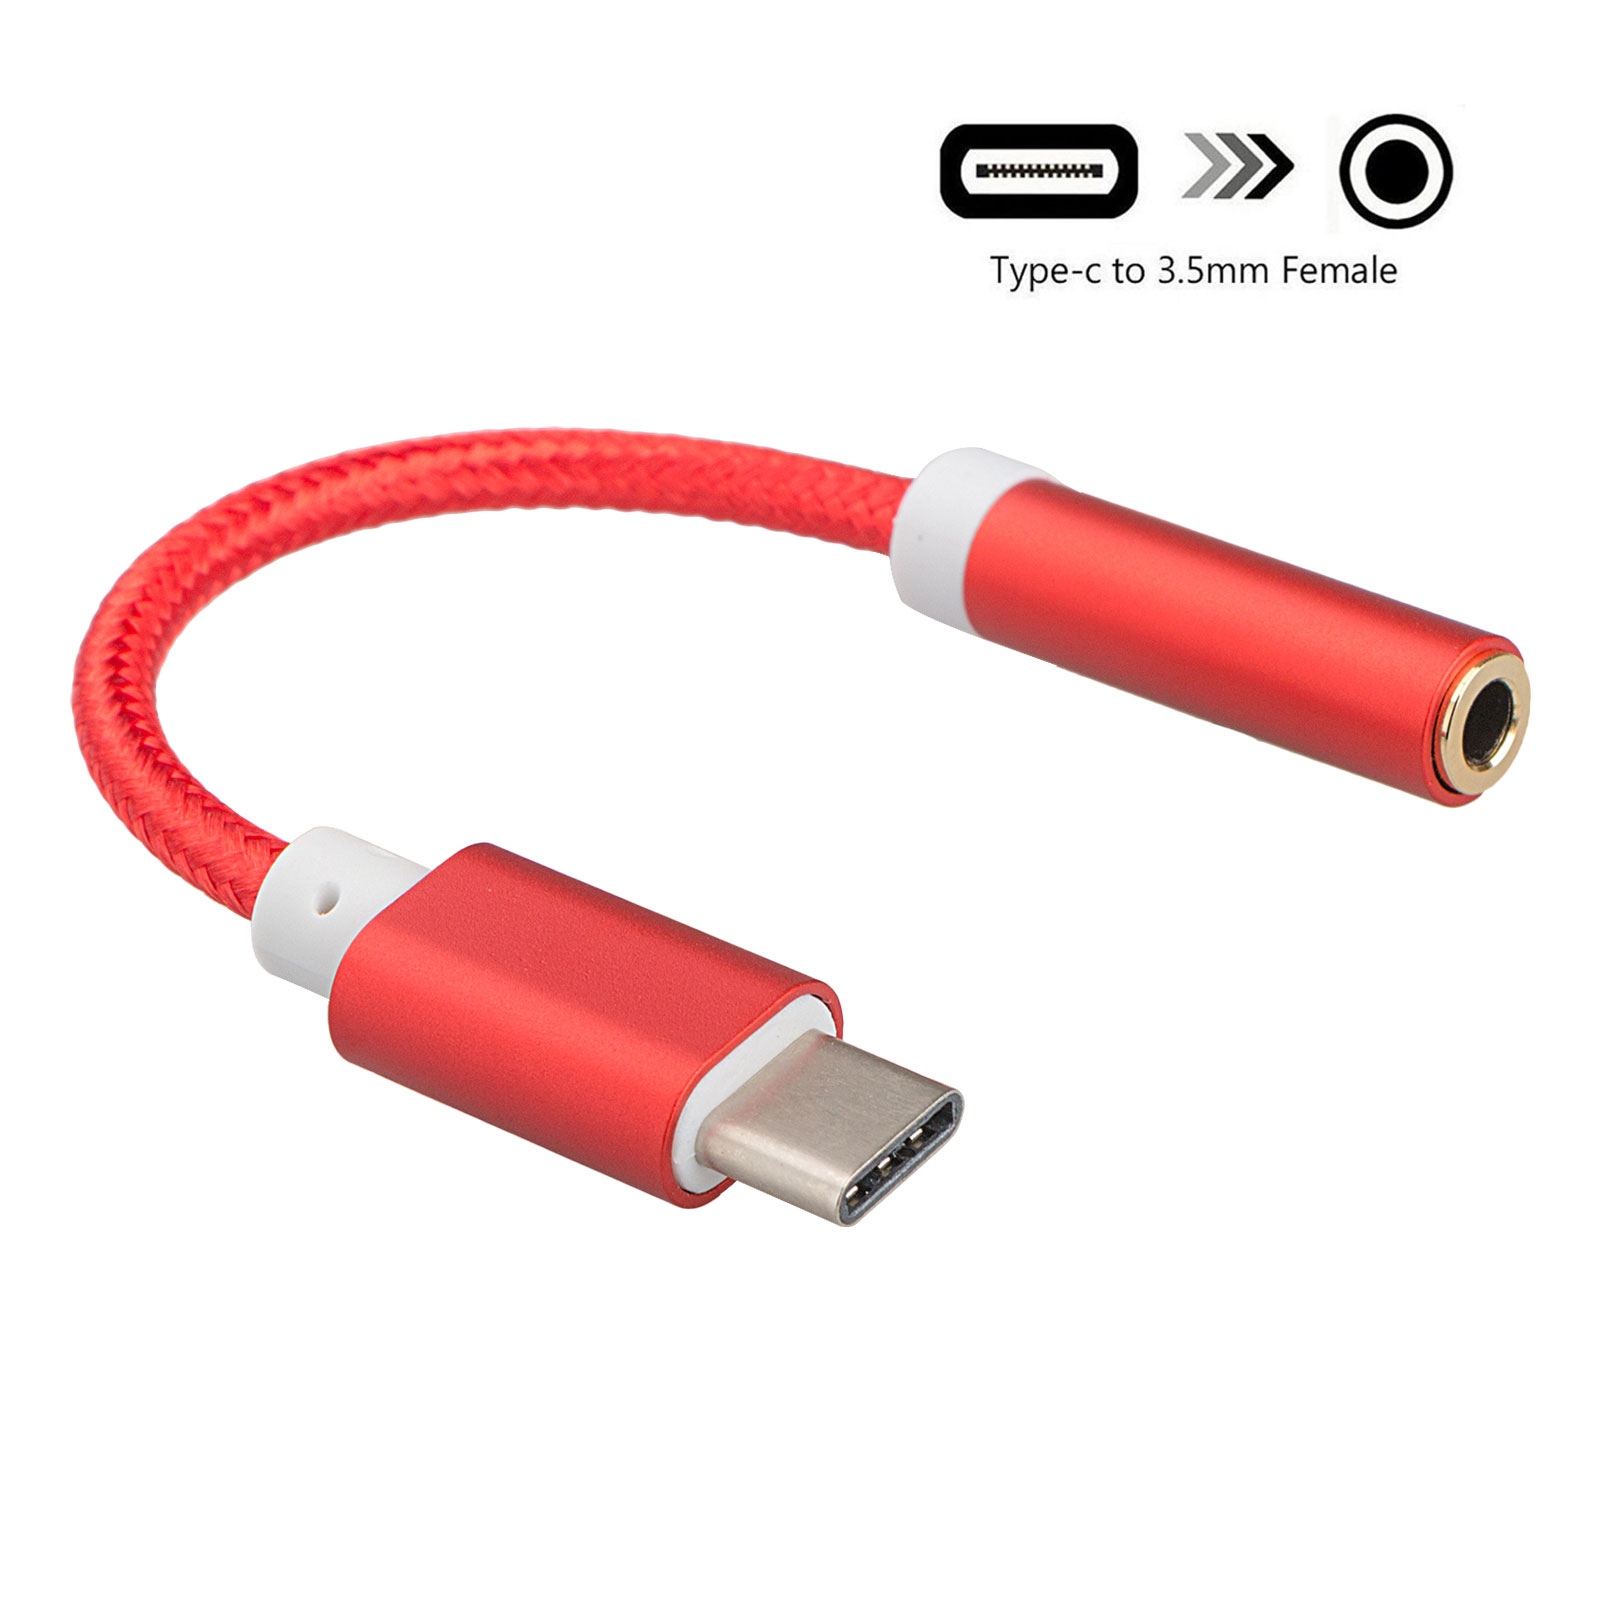 USB C to 3.5mm, EEEKit Type C to 3.5mm Audio Aux Headphone Jack Cable Adapter Stereo Audio Female Headphone Aux Connector for Motorola Moto Z, Xiaomi 6, Nubia Z17 and More